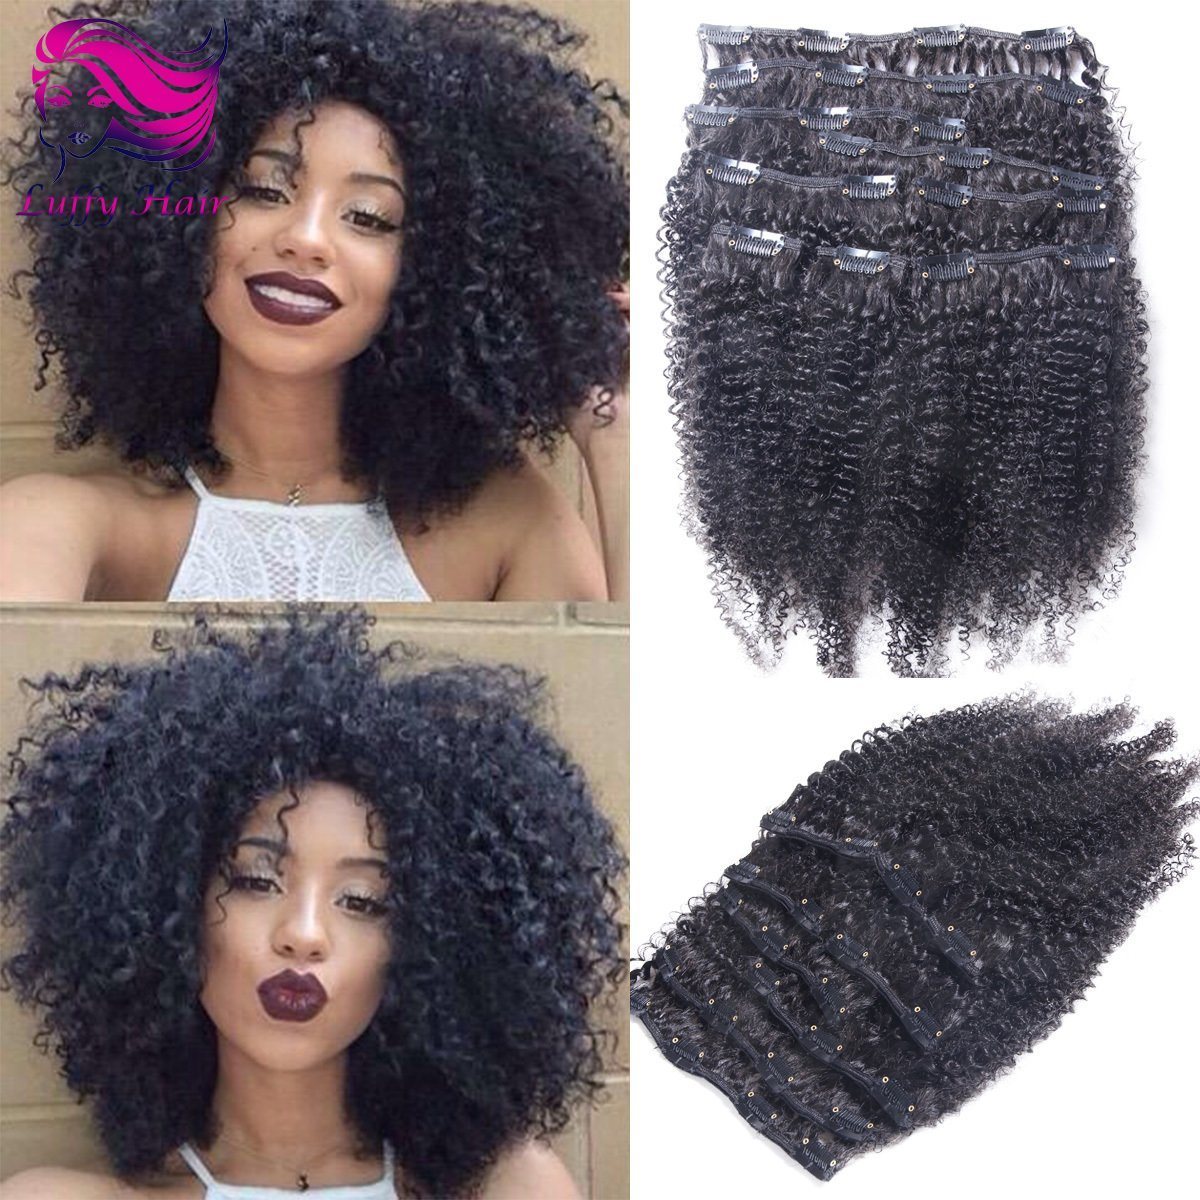 8A Virgin Human Hair Afro Clip In Hair Extensions - KIL001